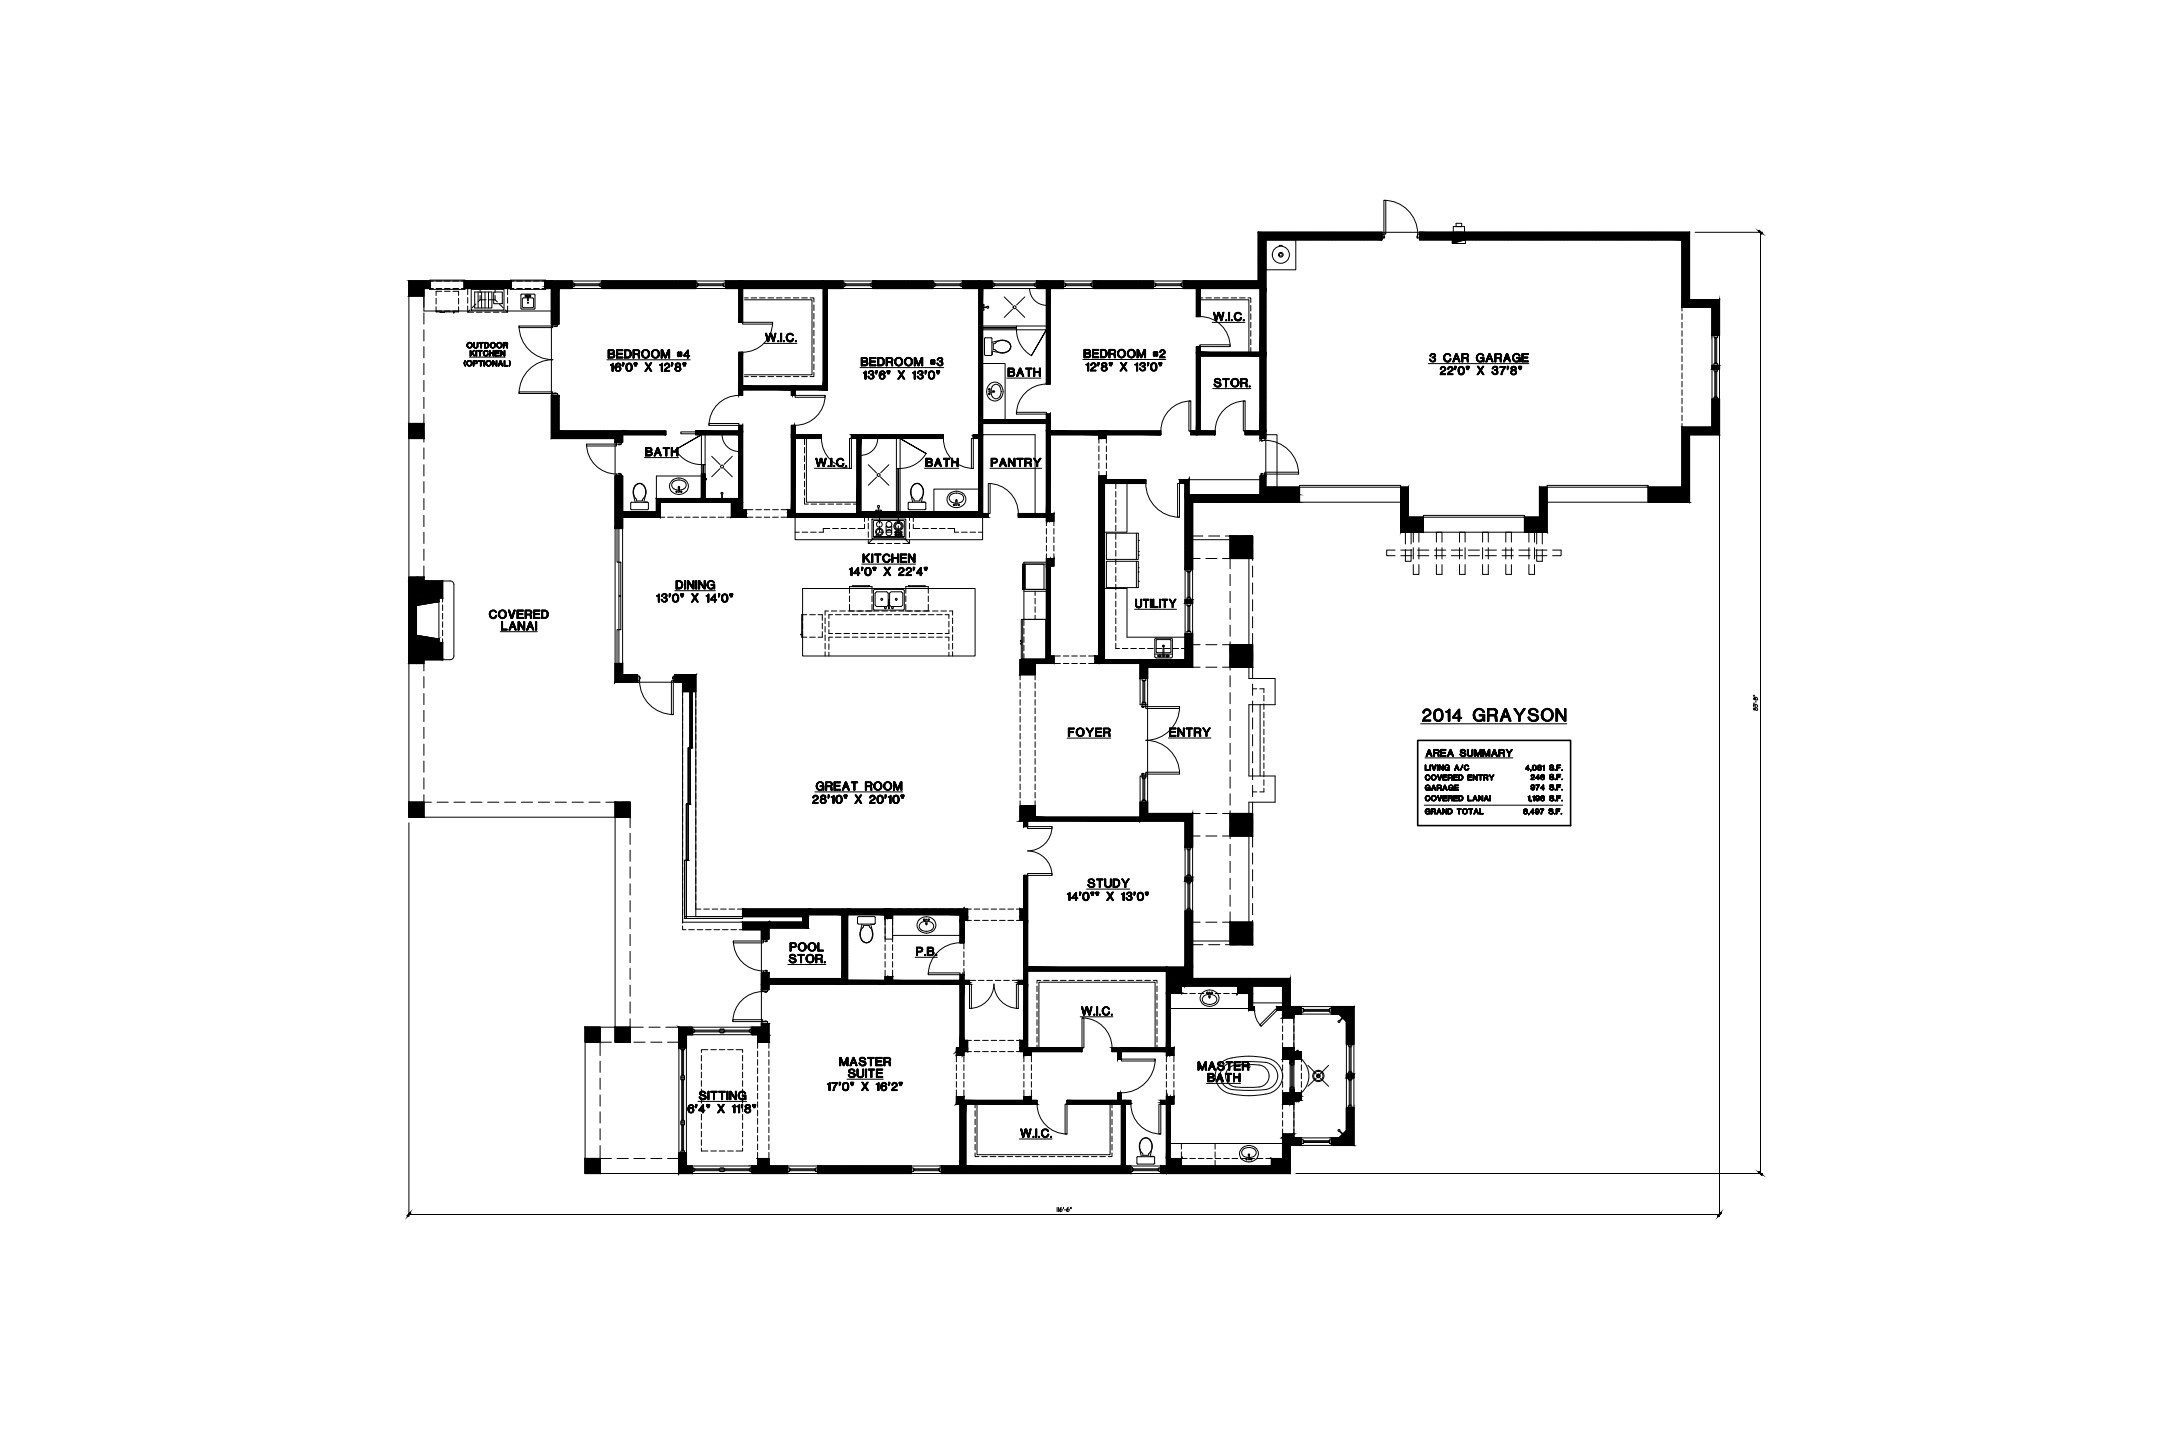 Stock Signature Homes Twin Eagles Grayson Floor Plan